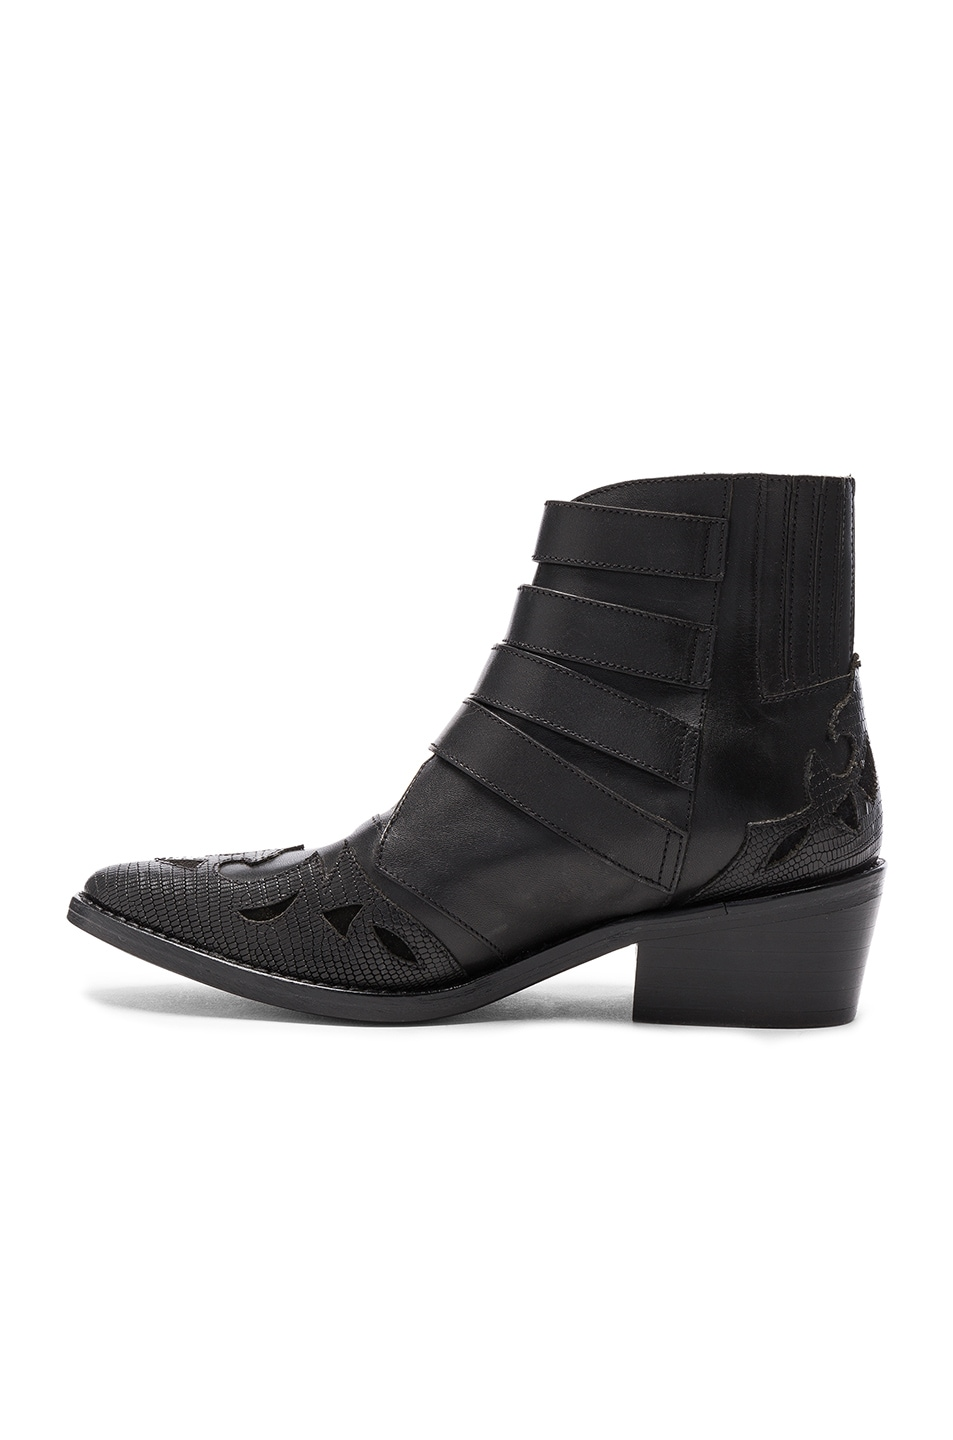 Image 5 of TOGA PULLA Leather Booties in Black Mix Leather